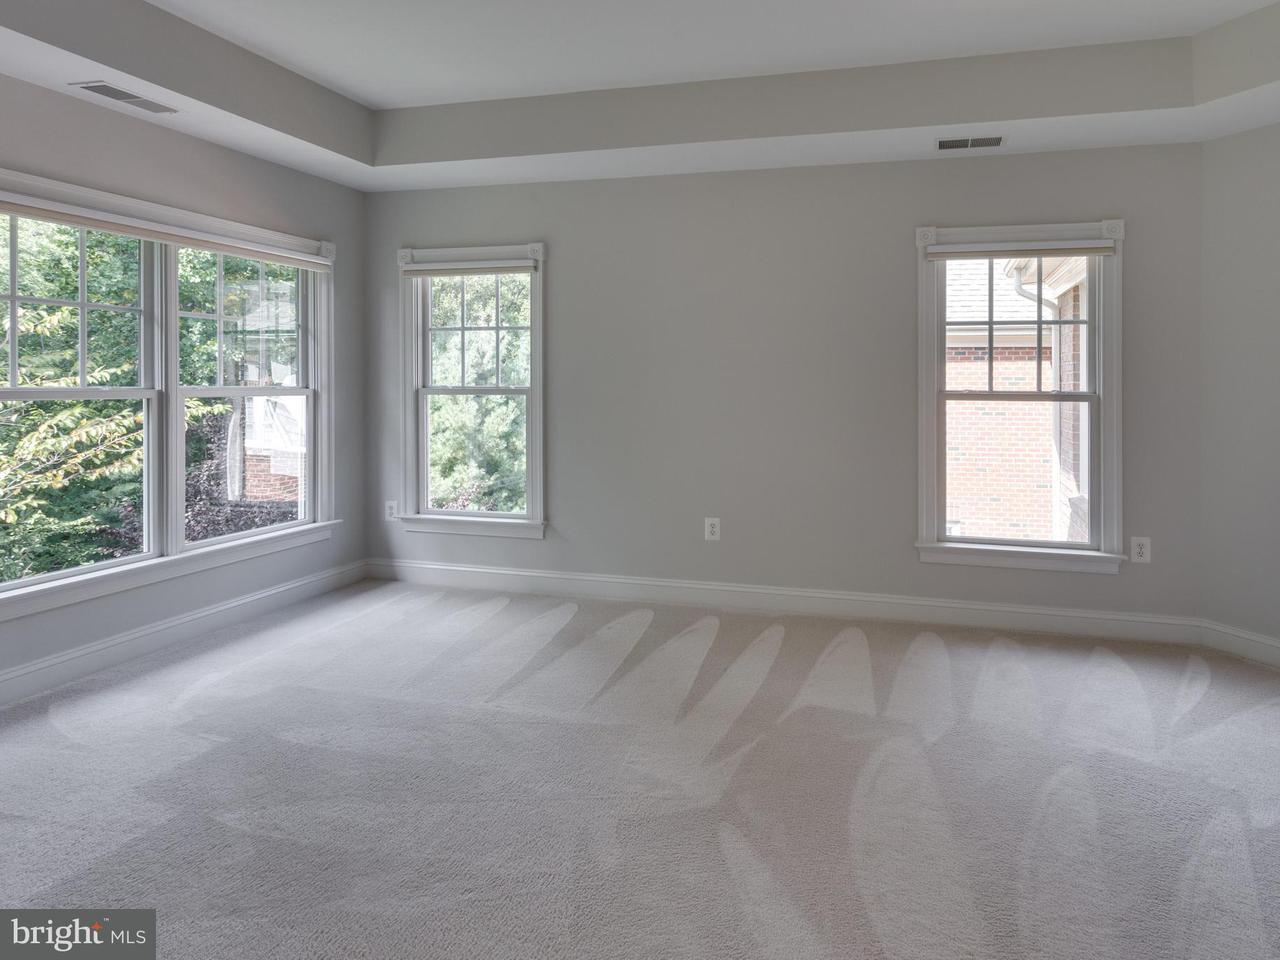 Additional photo for property listing at 9411 Old Reserve Way 9411 Old Reserve Way Fairfax, Virginia 22031 Estados Unidos